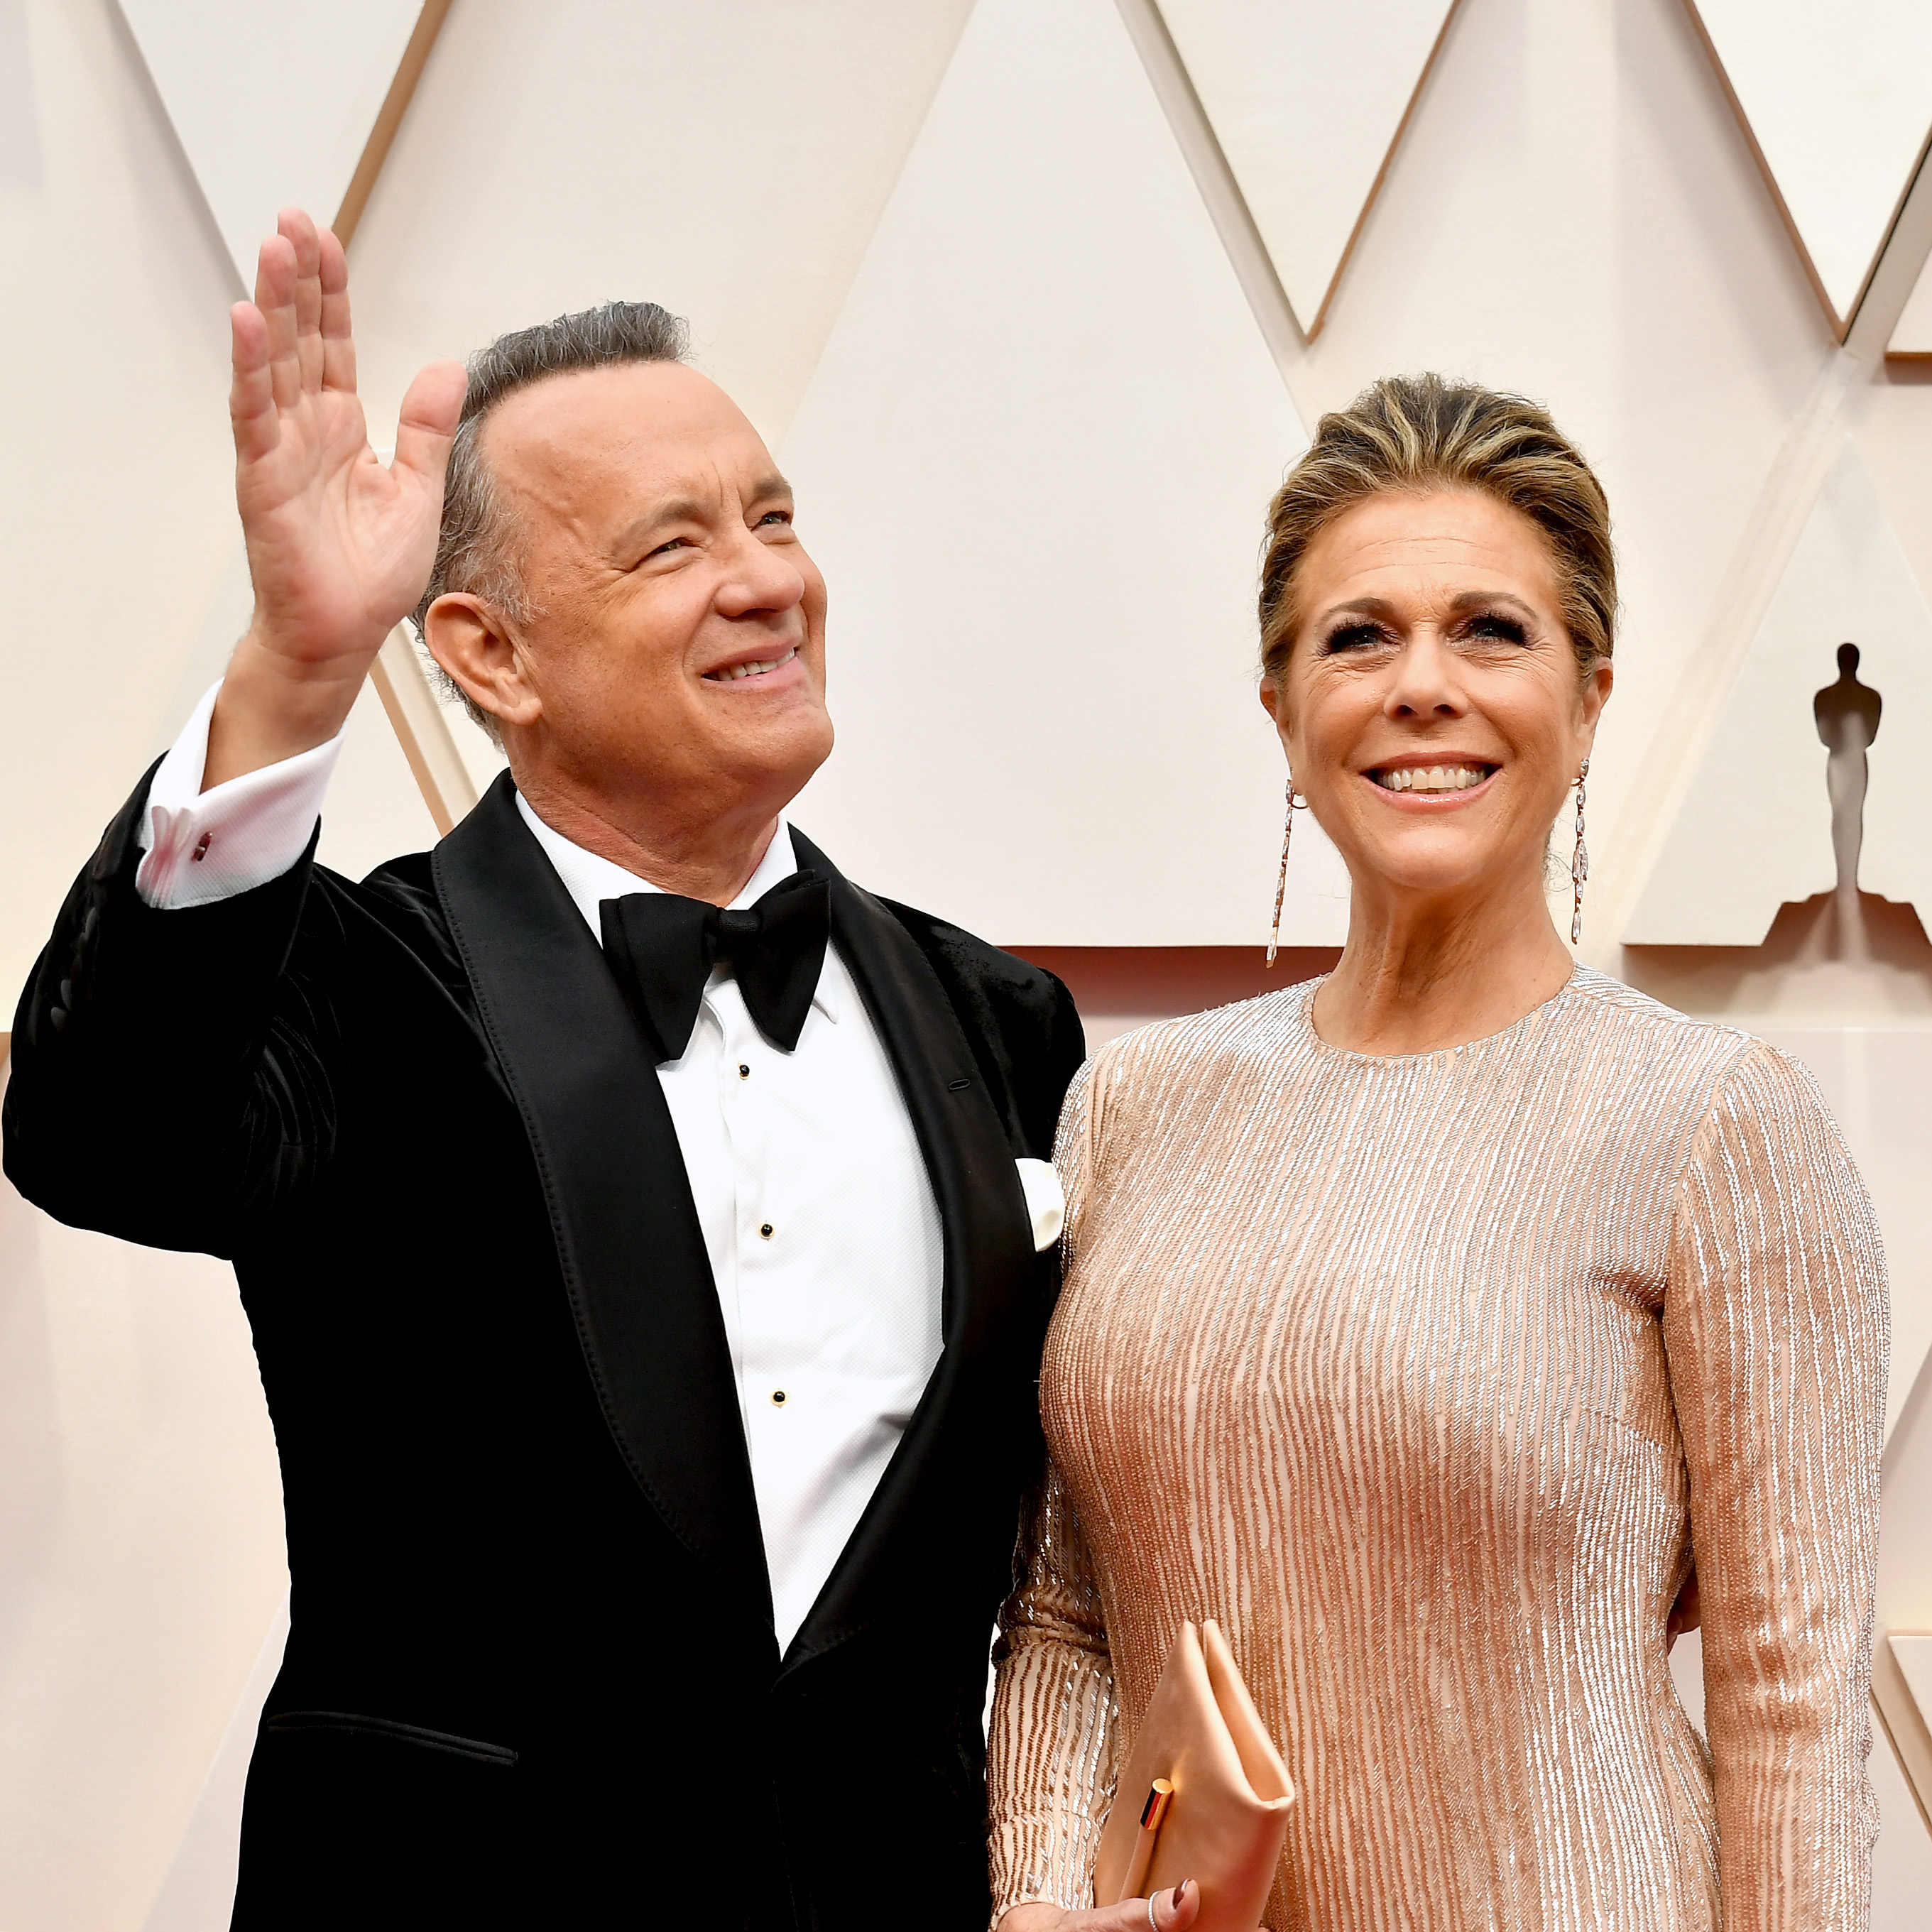 you tested positive for covid-19. who has a right to know? You Tested Positive for COVID-19. Who Has a Right to Know? Tom Hanks Rita Wilson